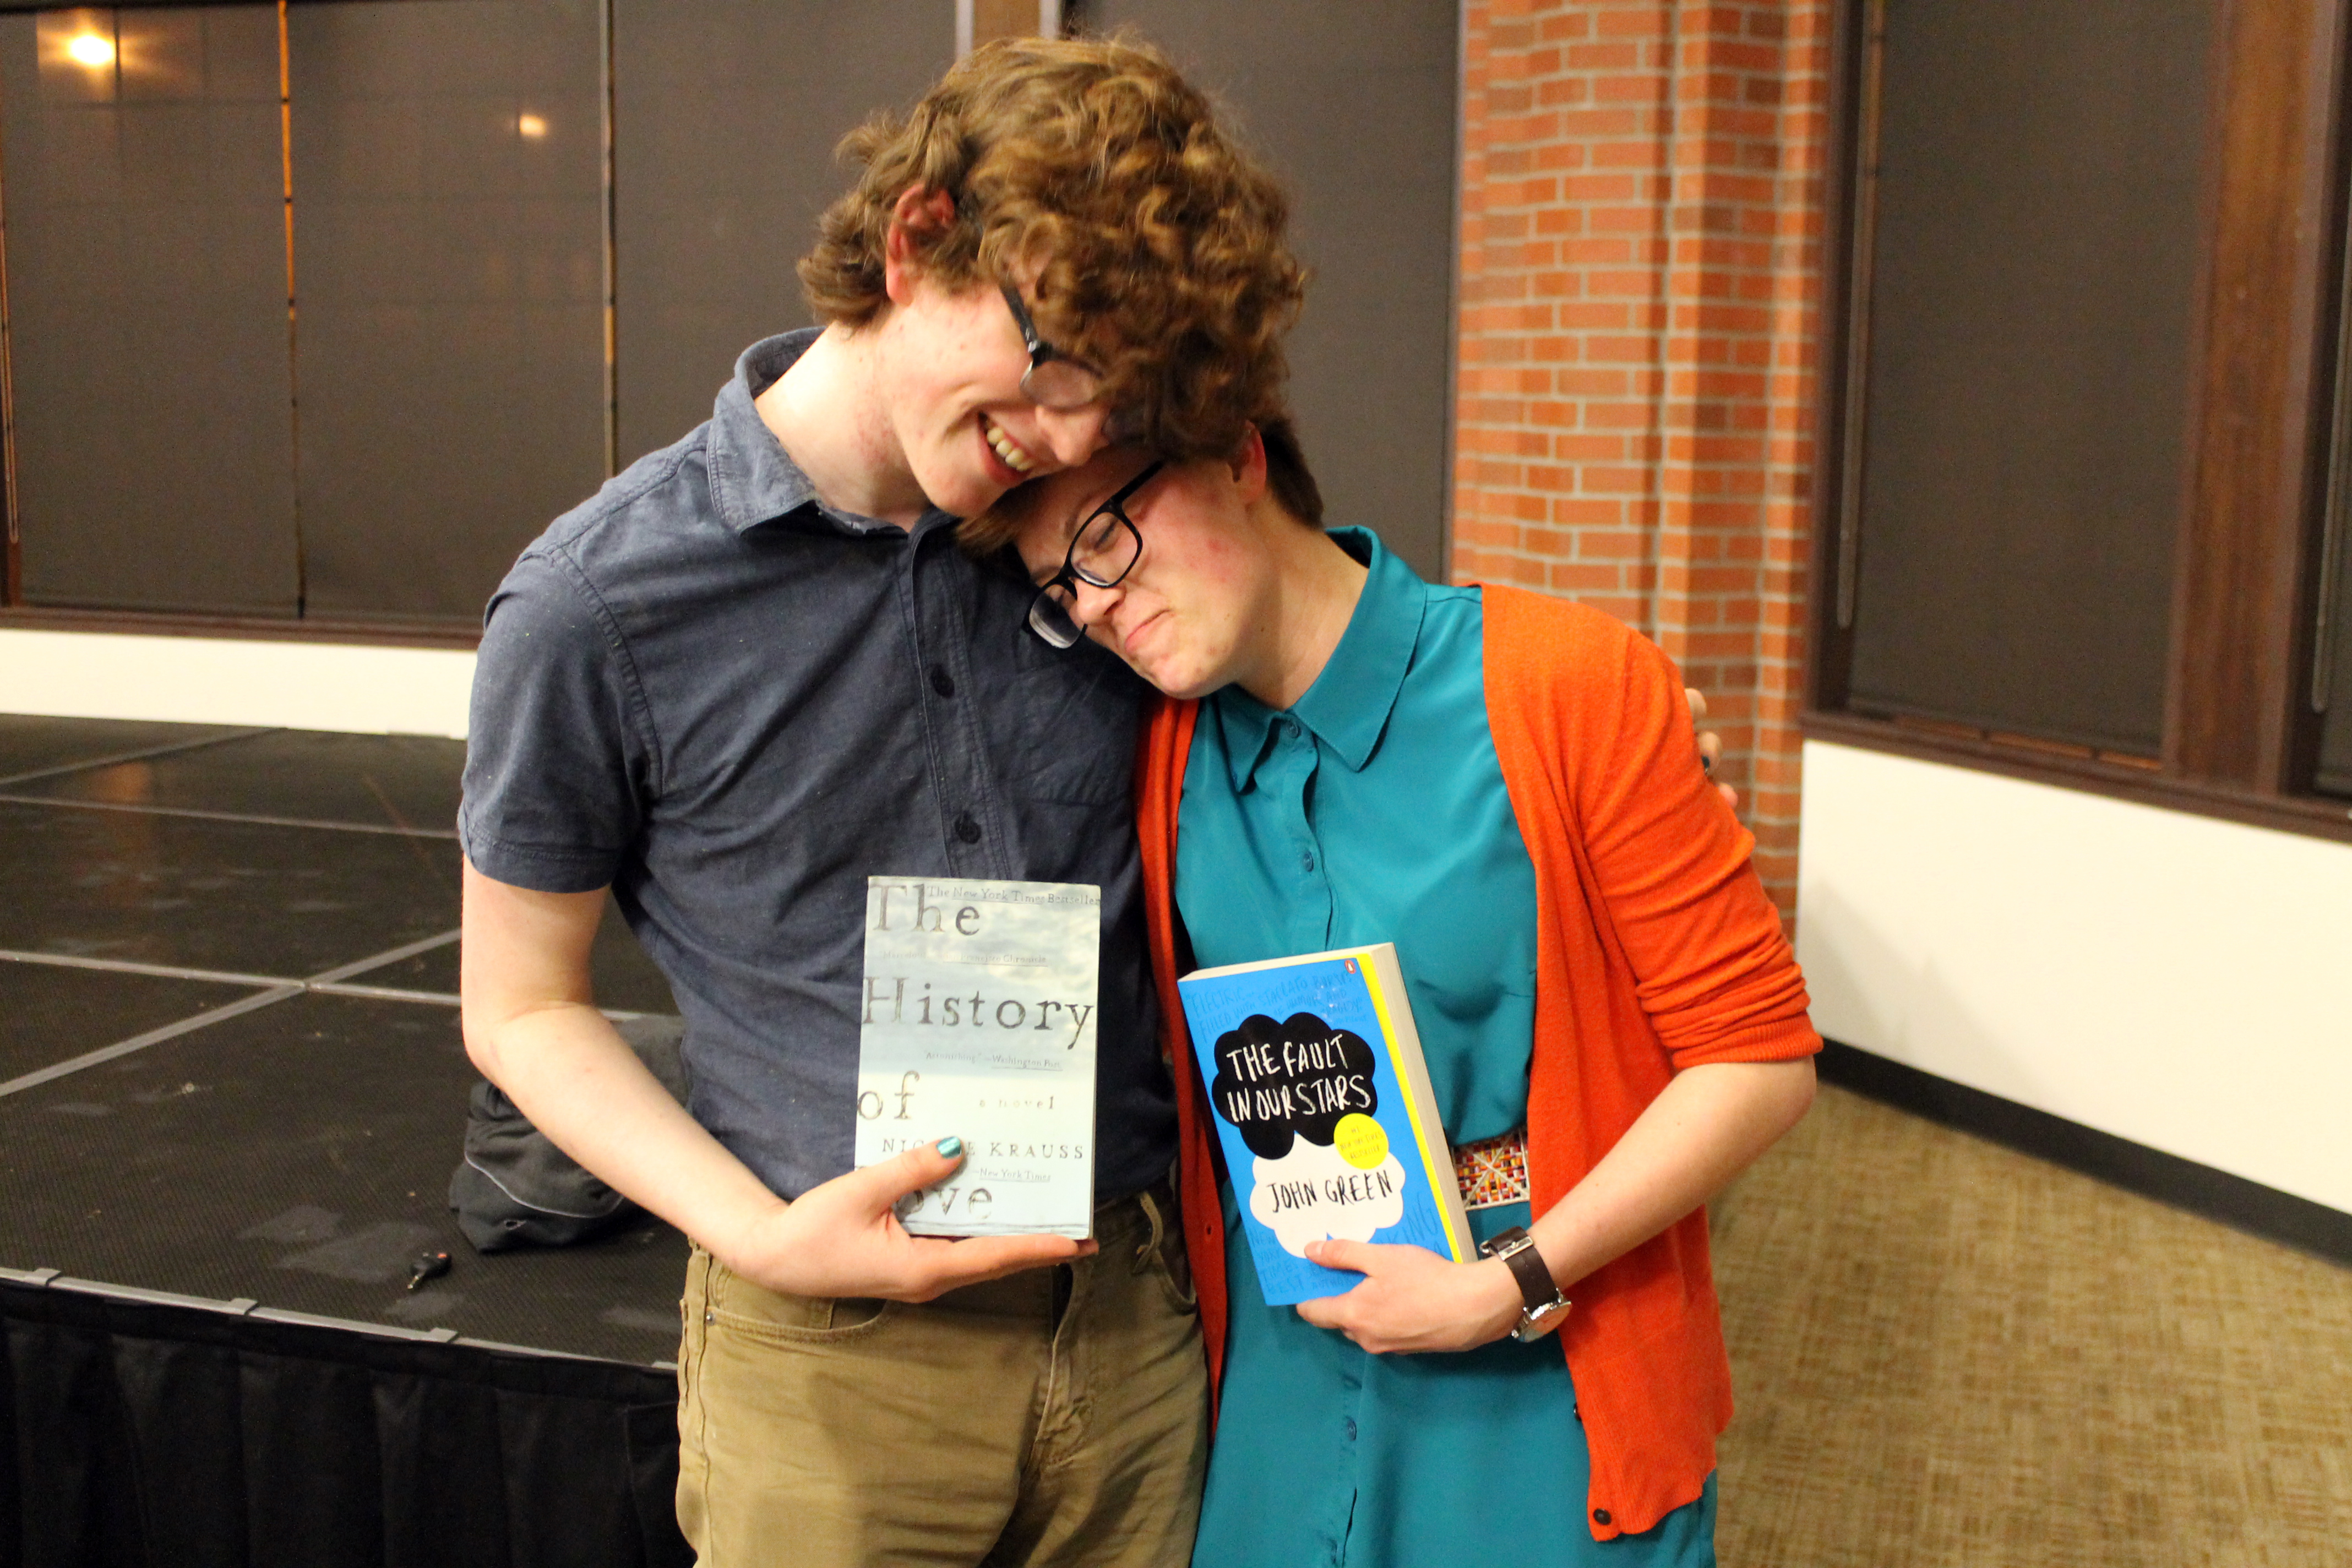 Chris Kelly and Nicole share a moment with their new books